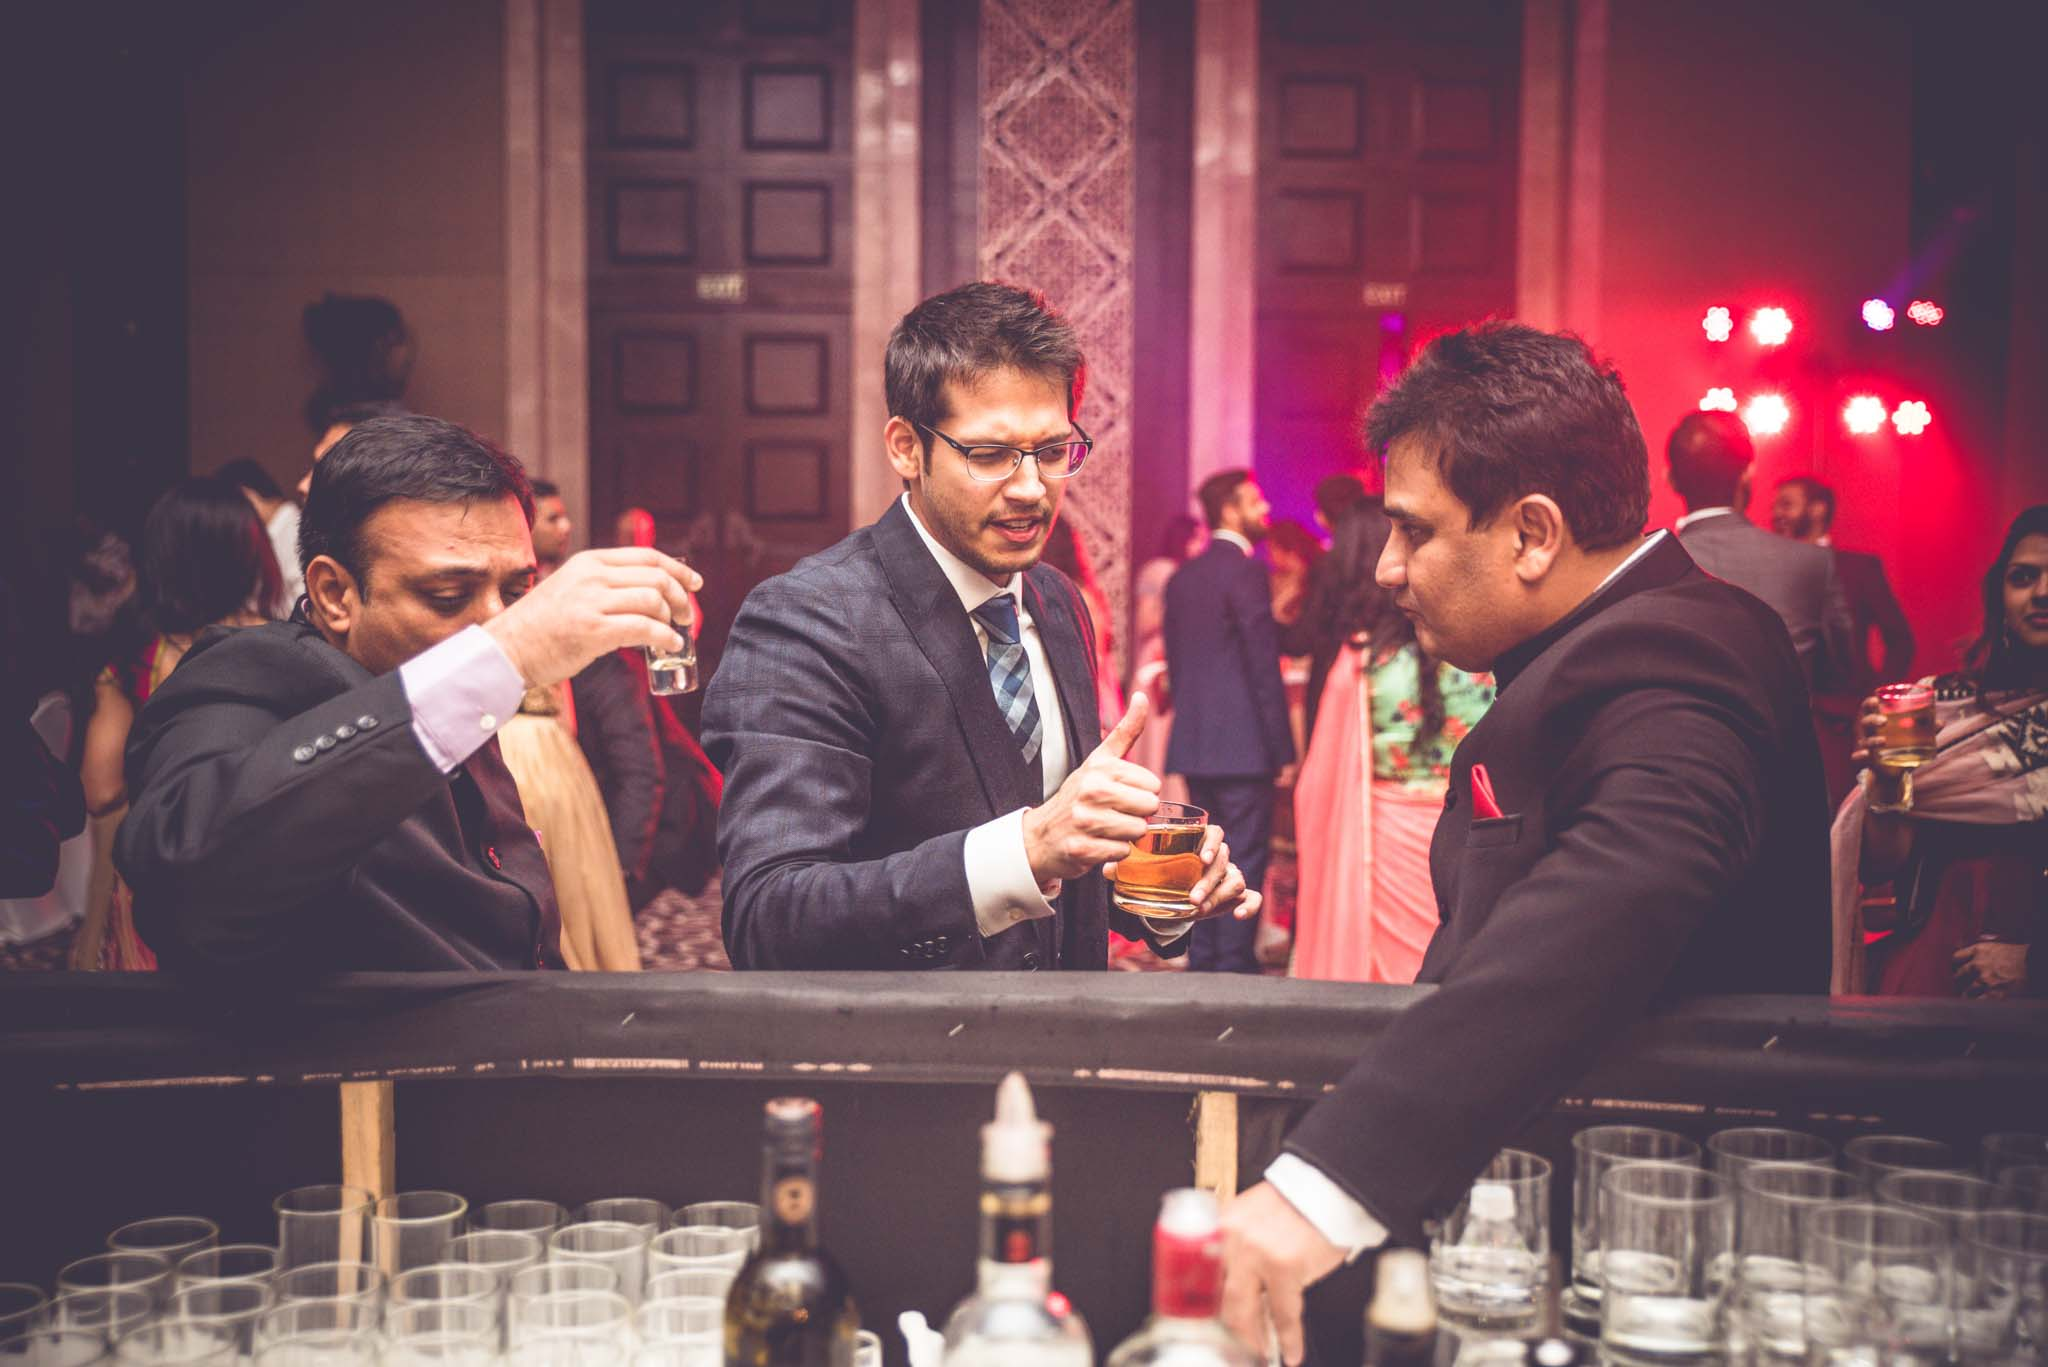 StRegis-Palladium-Mumbai-Candid-Wedding-Photography-85